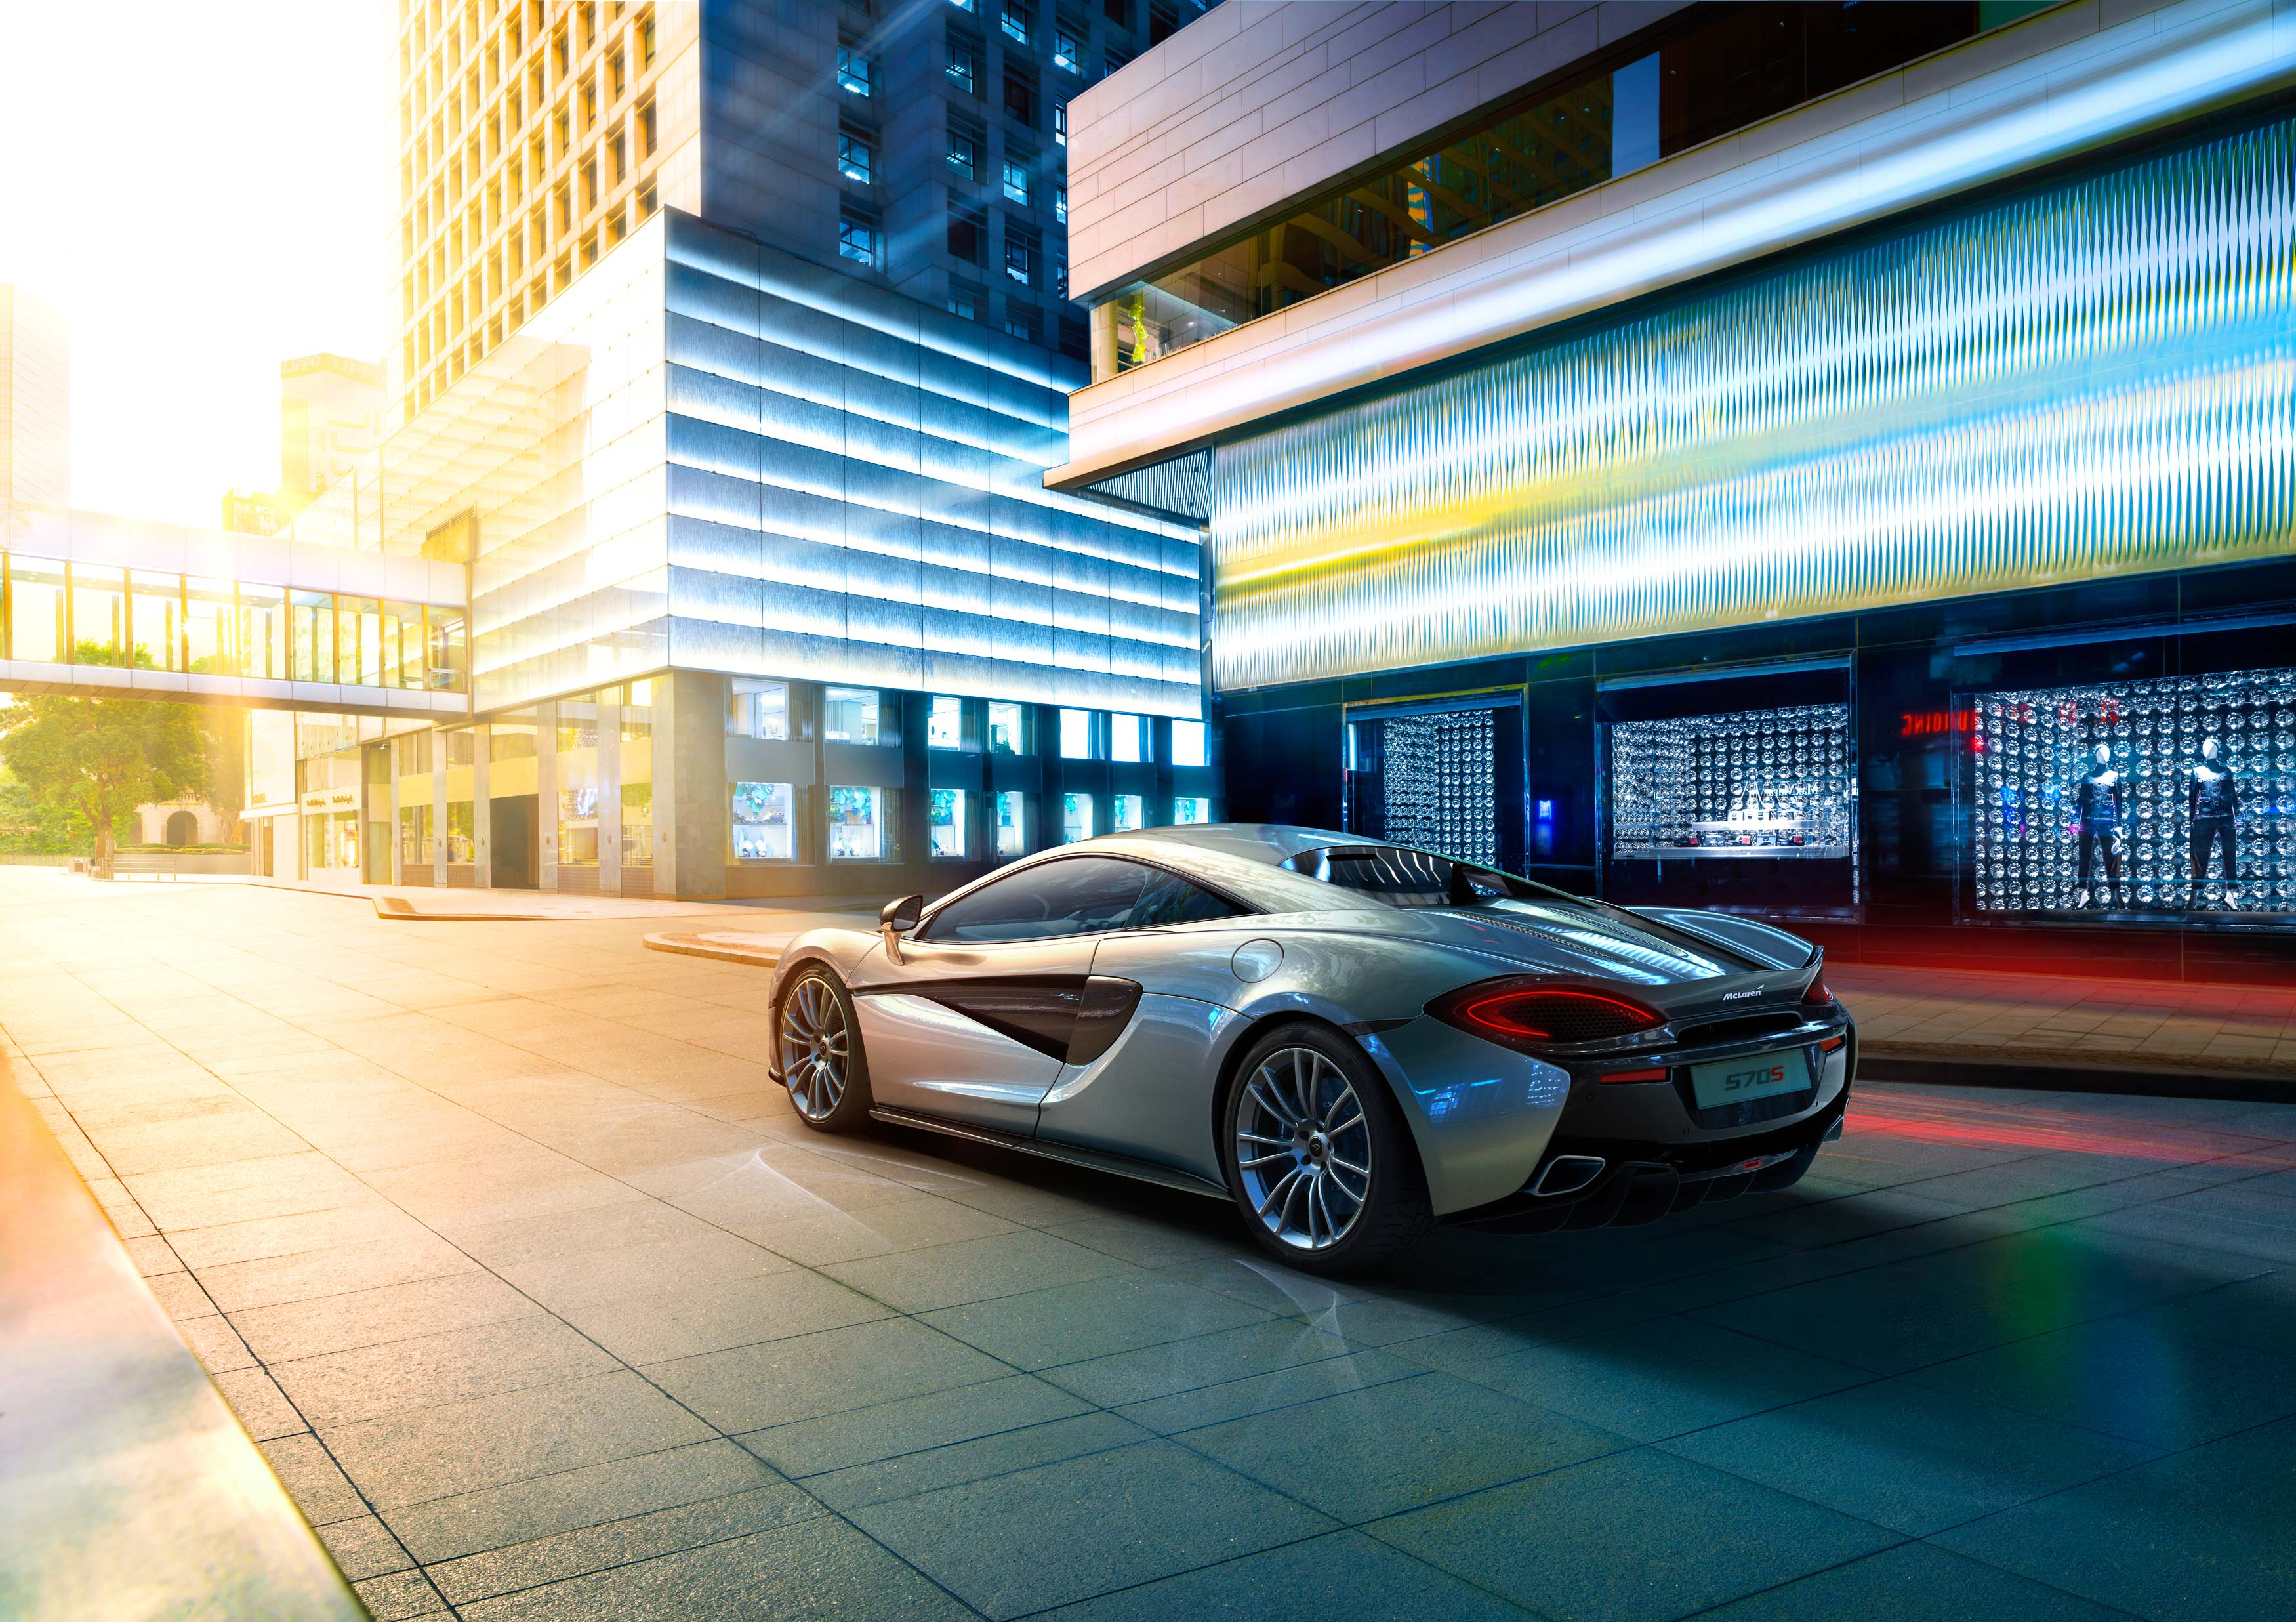 migs-foto-cgi-photographer-automotive-car-hong-kong-michael-lee-advtertising-commercial-photography-McLaren-570S-Silver-Rear-3q